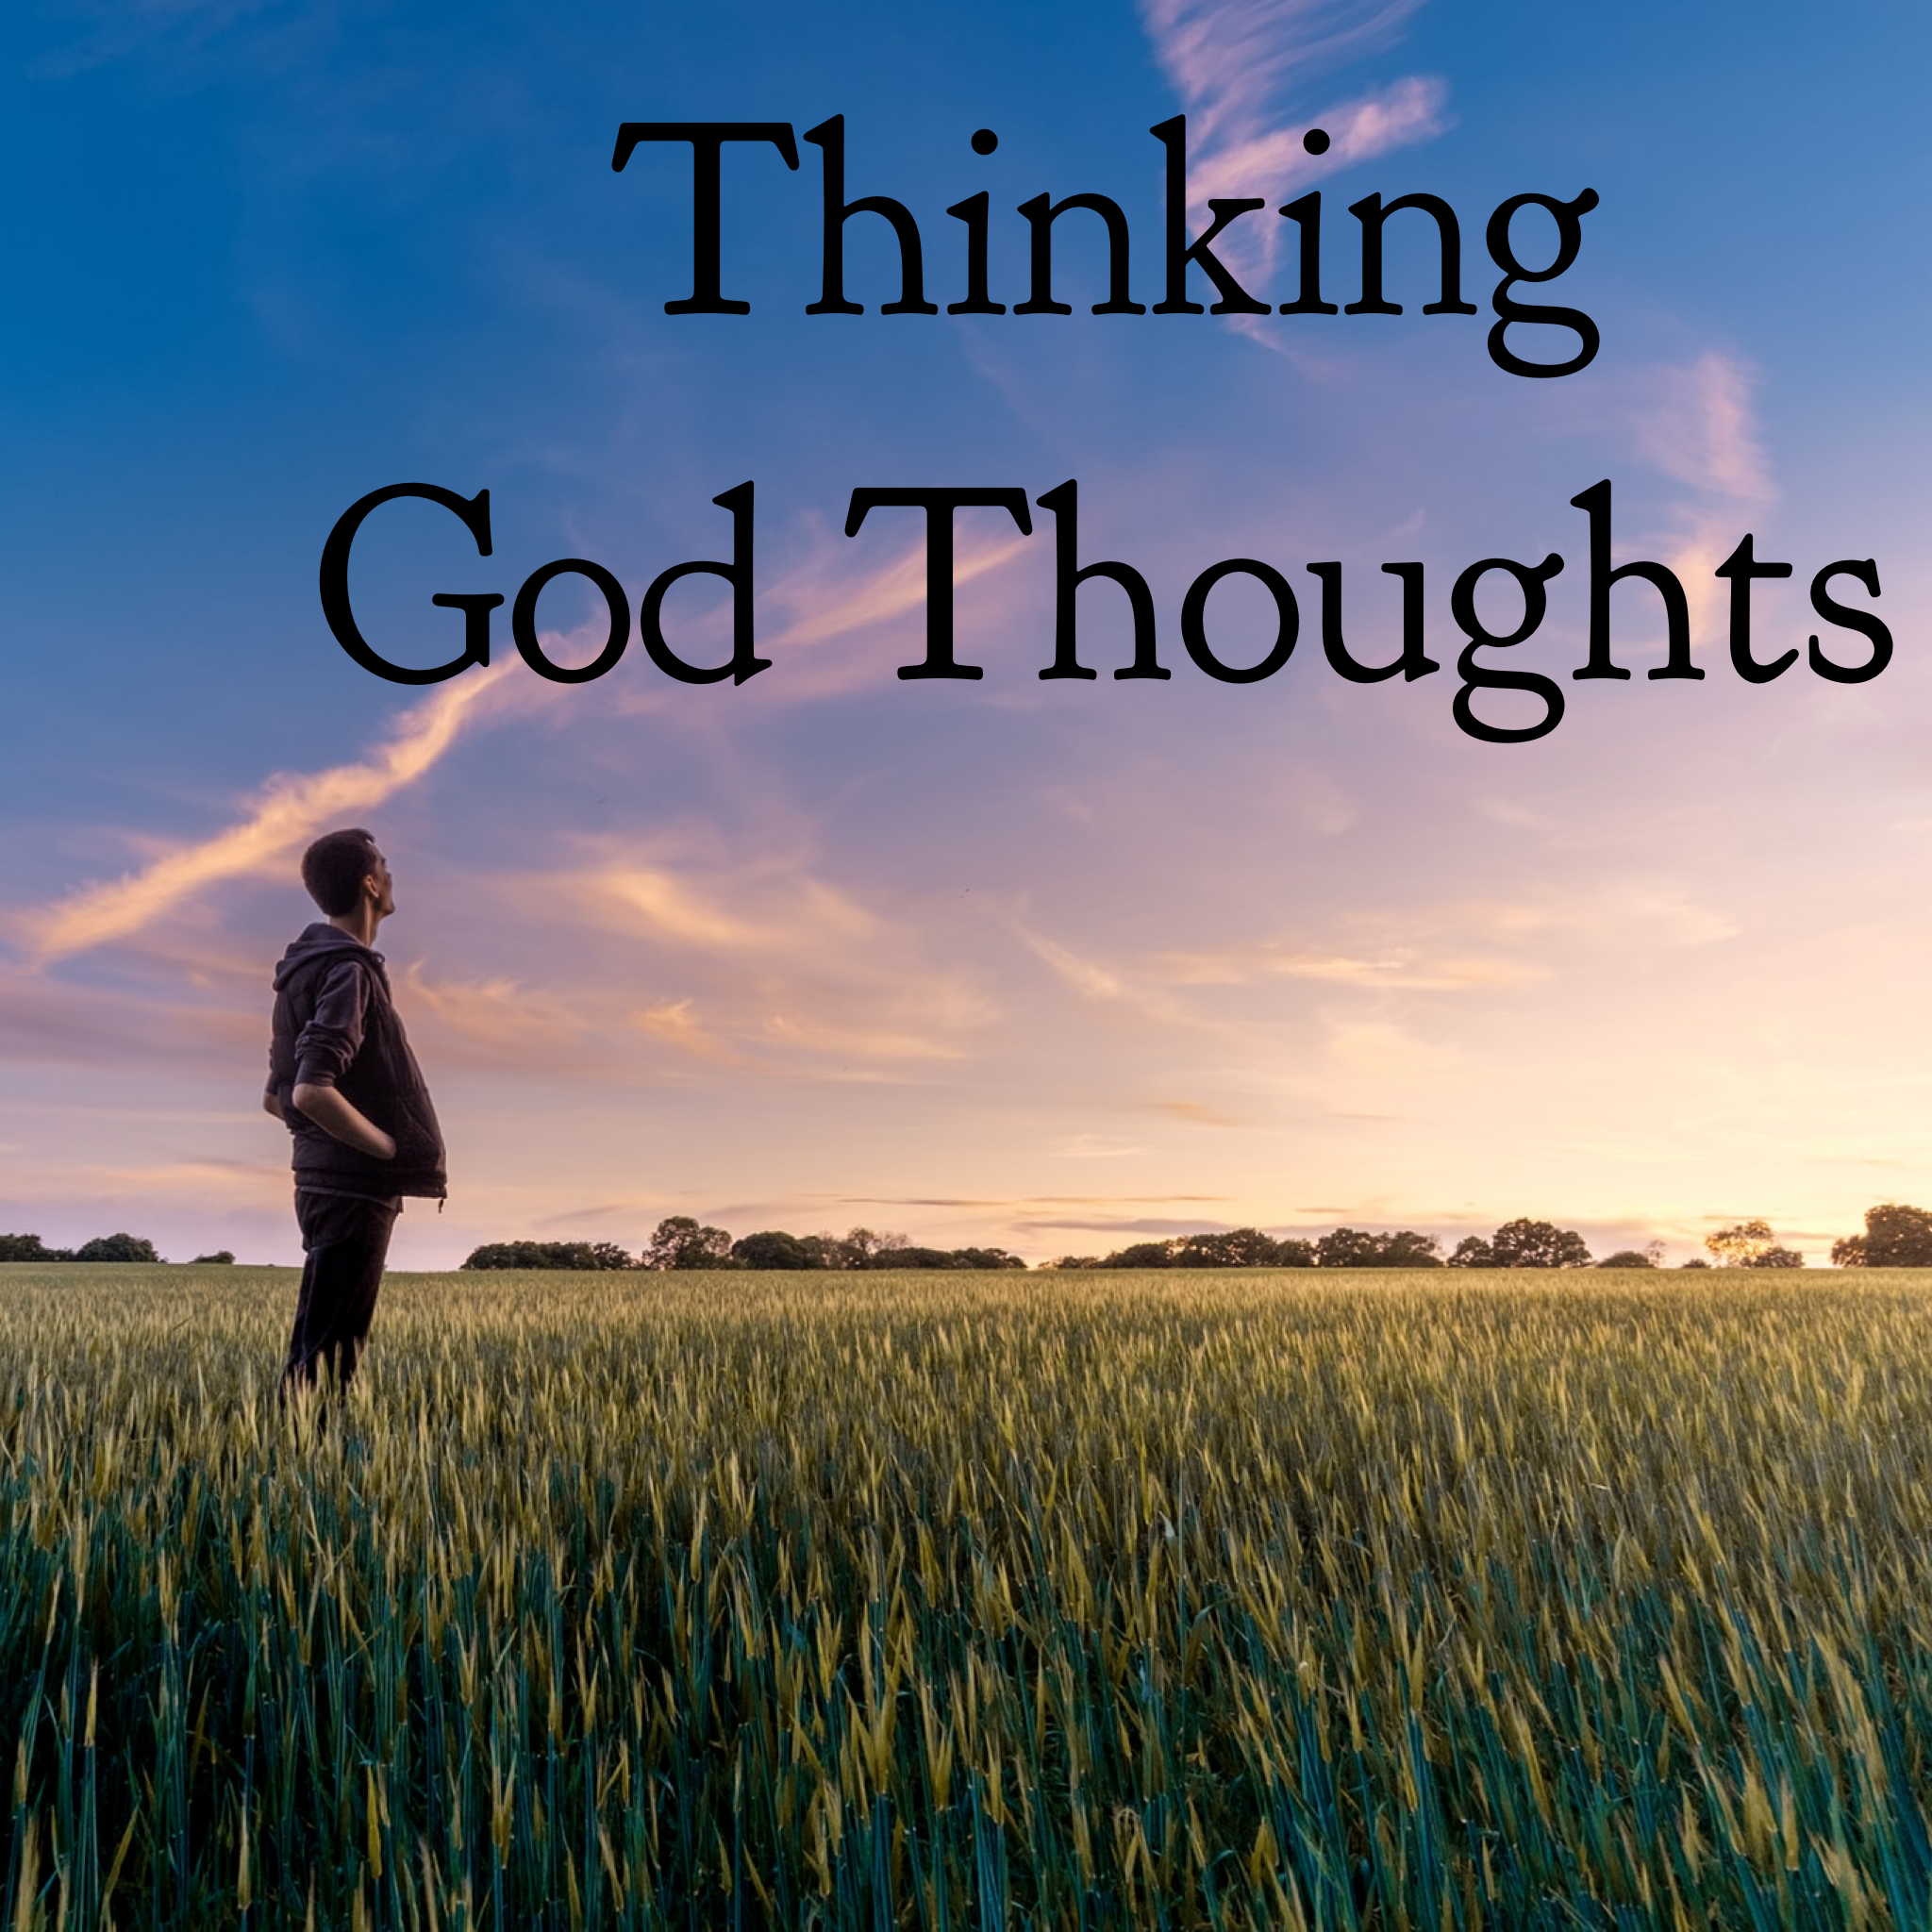 Thinking God Thoughts - 11/22/19